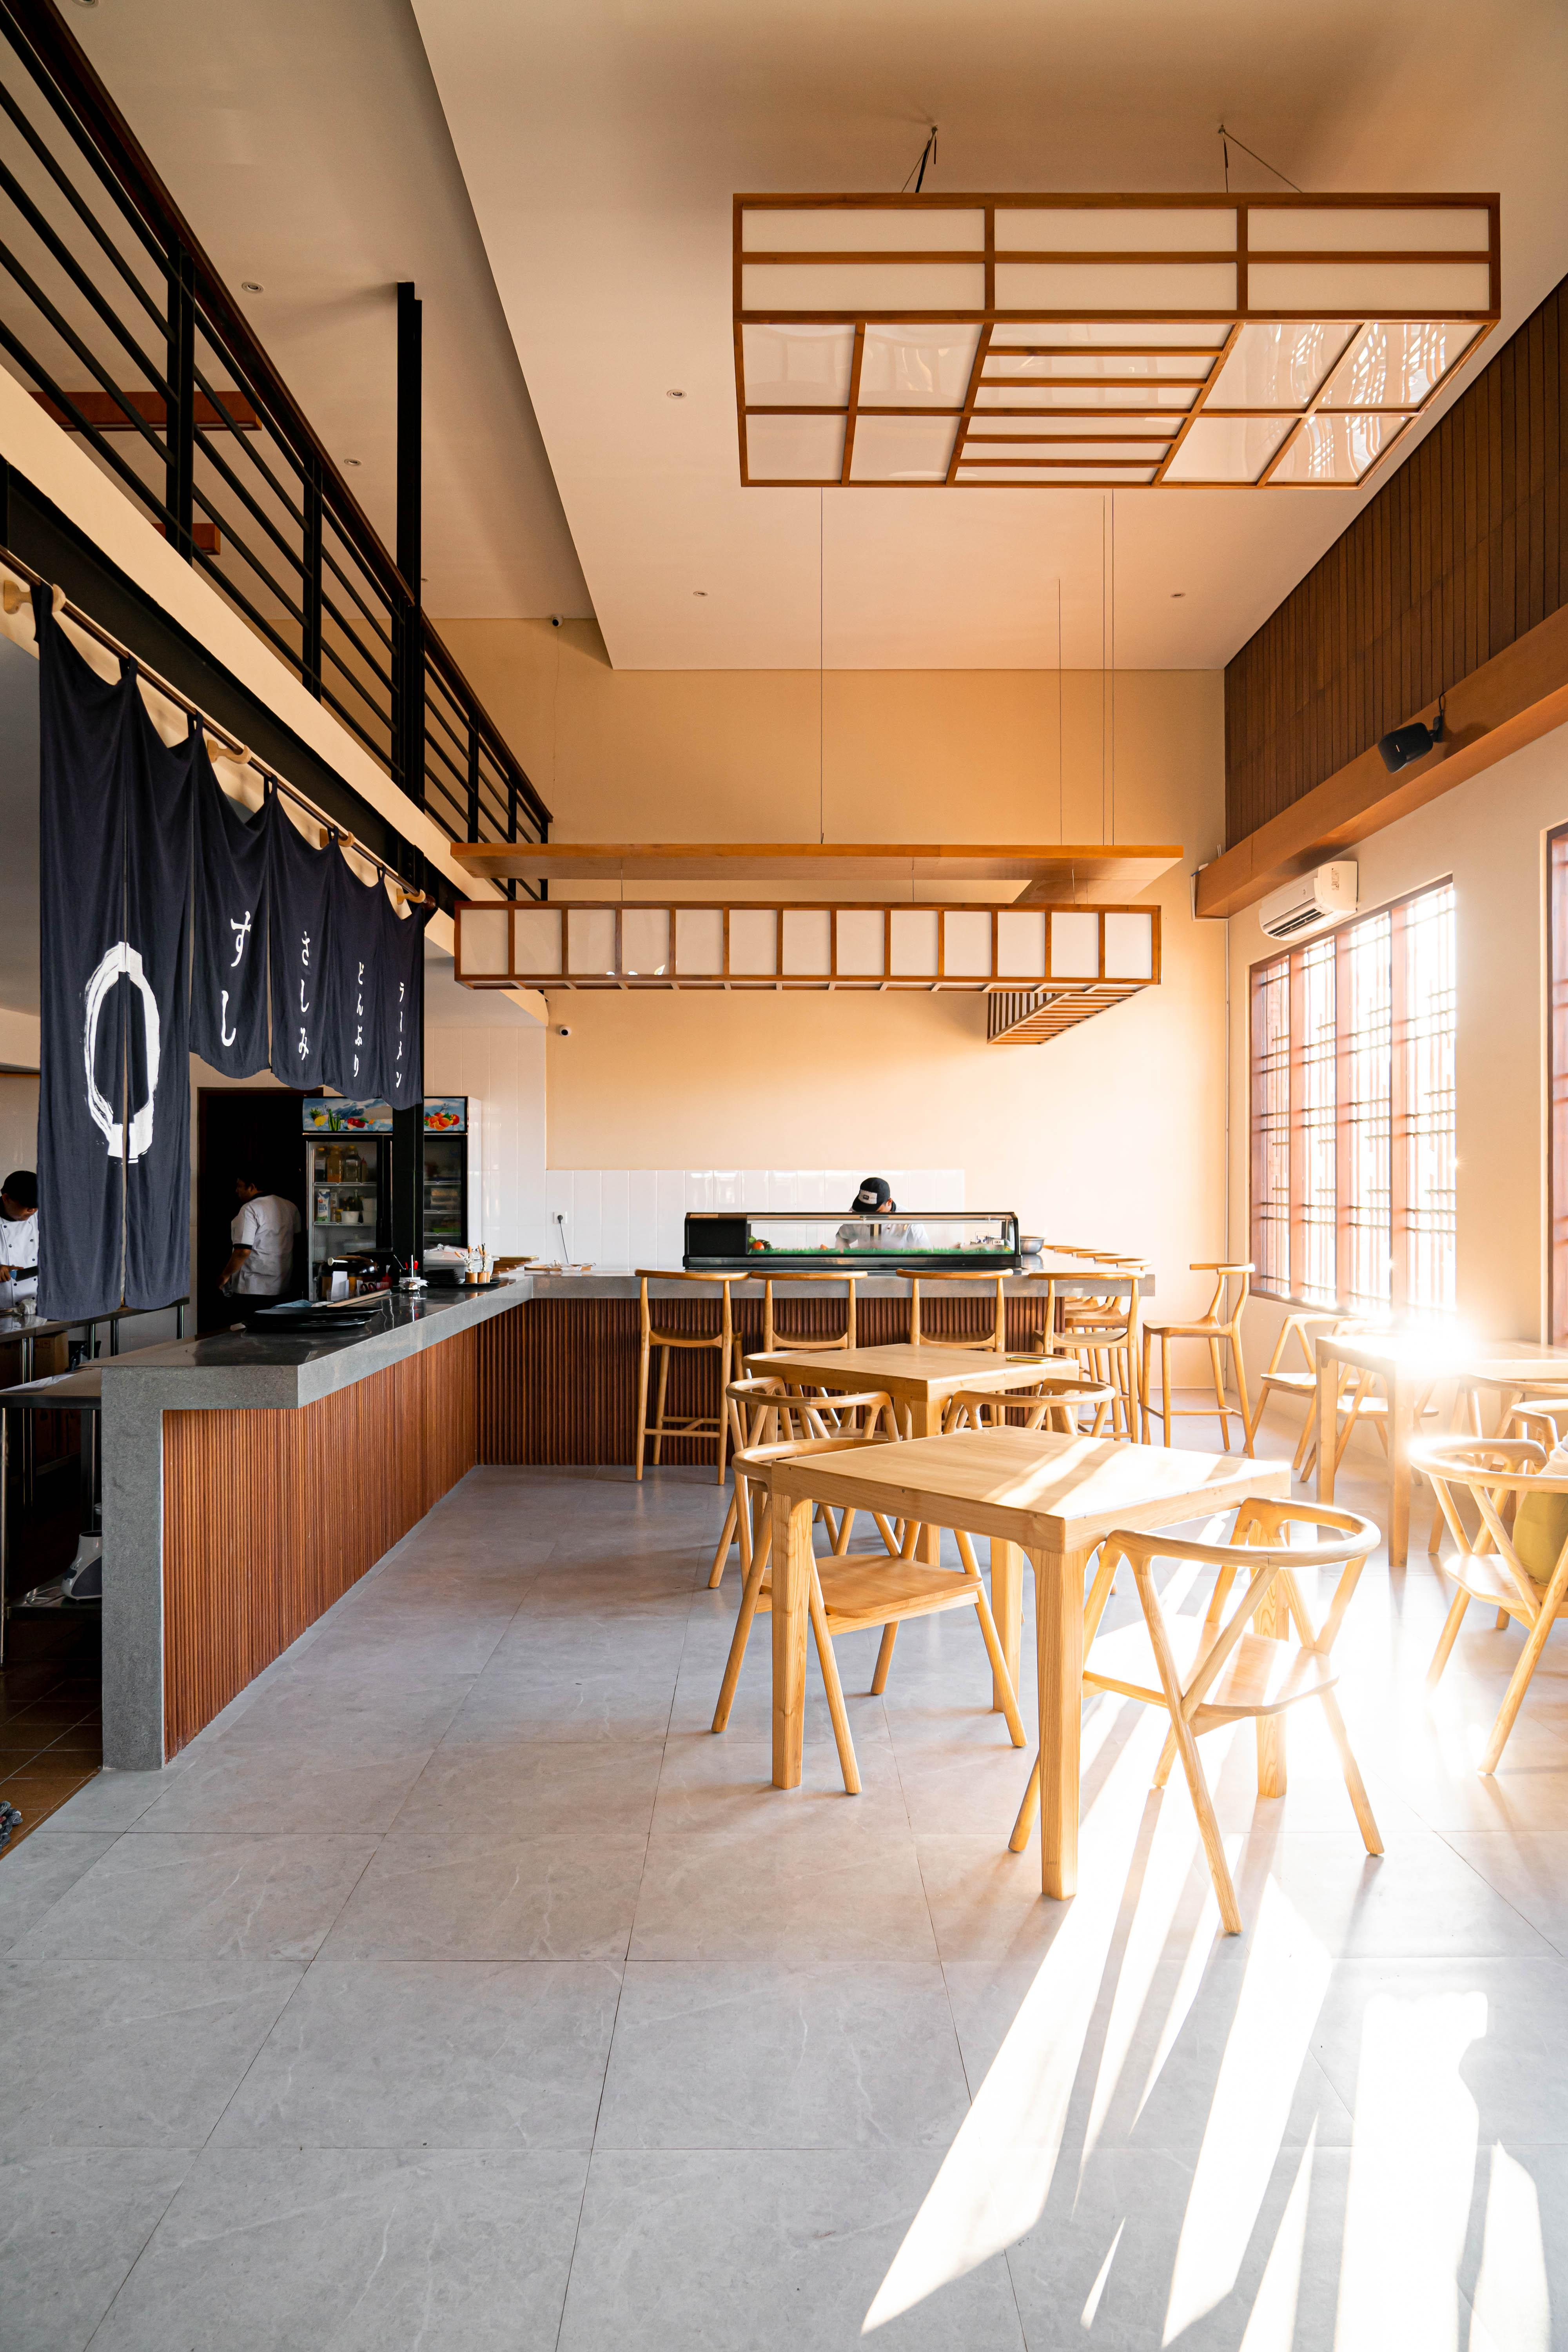 Indulge in Authentic Japanese Cuisine in the Heart of Canggu at Enso Sushi Bali